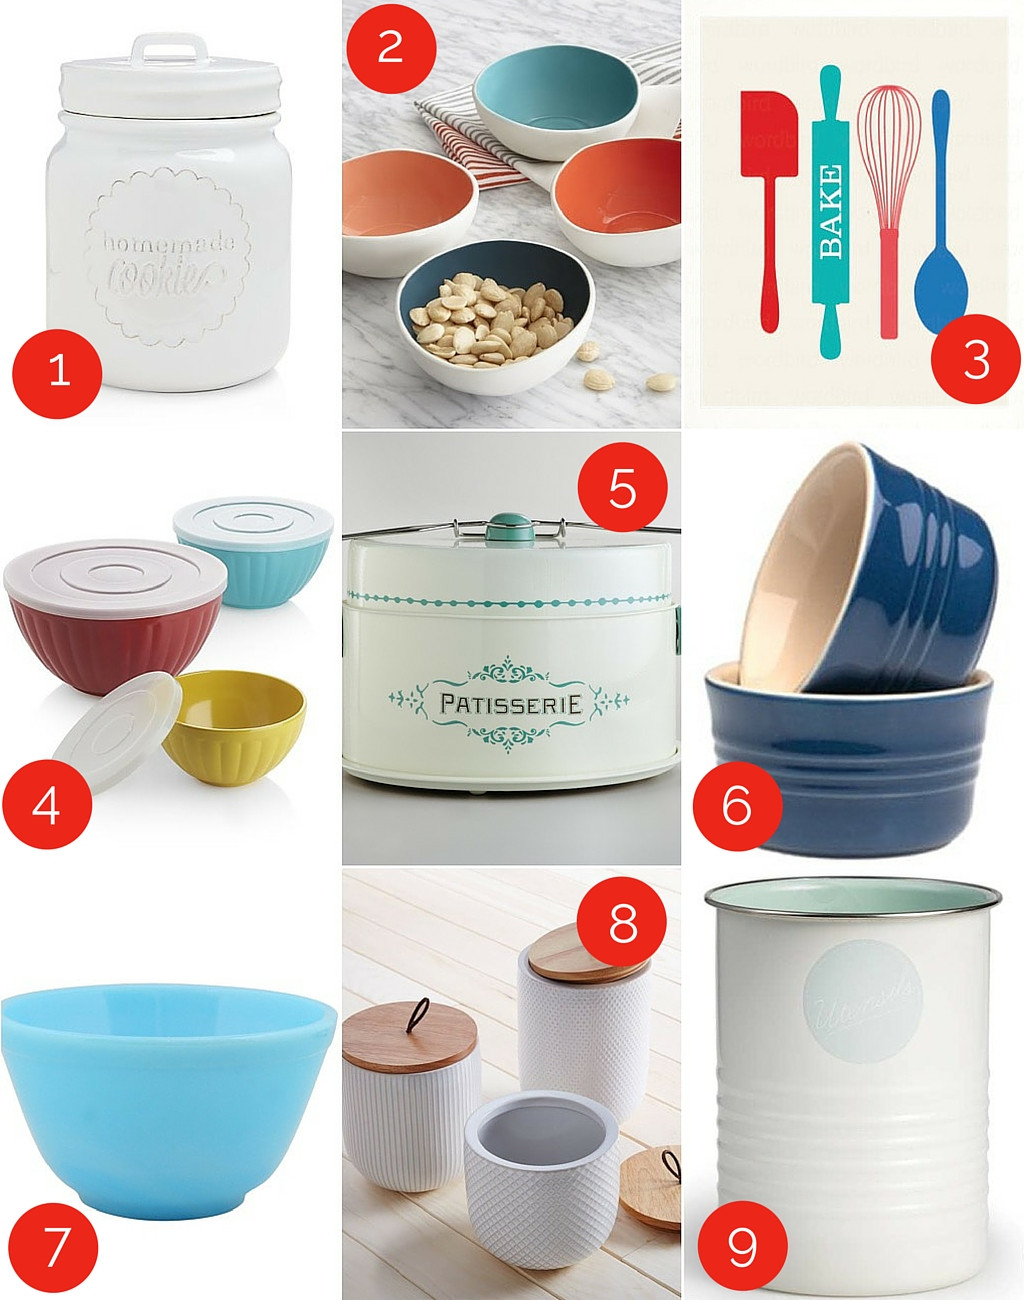 Best ideas about Baker Gift Ideas . Save or Pin 2015 Holiday Gift Guide for Bakers Bake or Break Now.